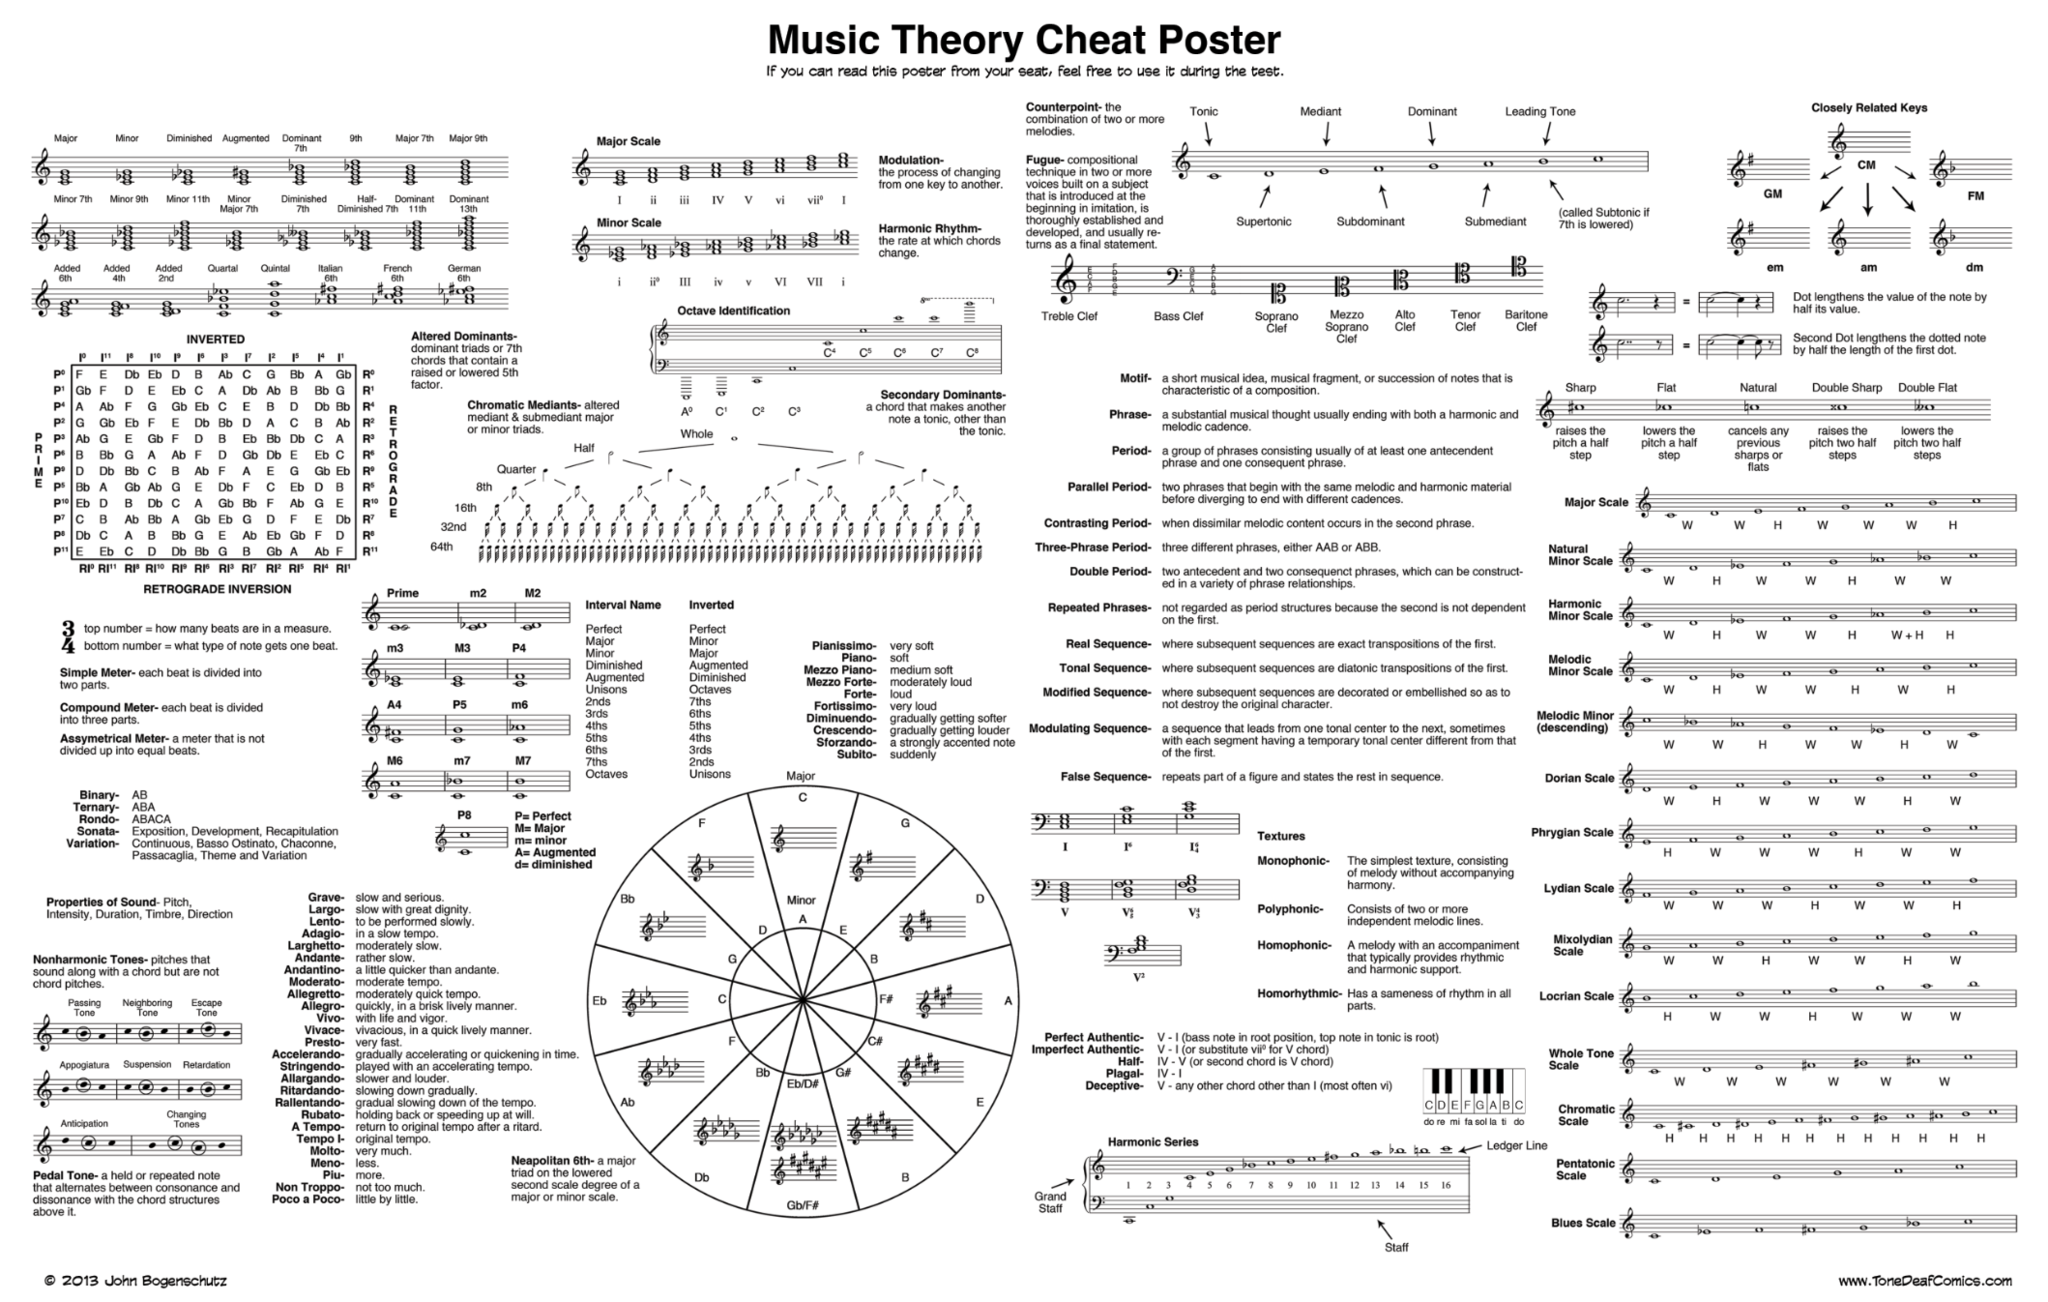 Worksheets Music Fundamentals Worksheets music theory cheat poster test and christening by popular demand the is now available to christen your music